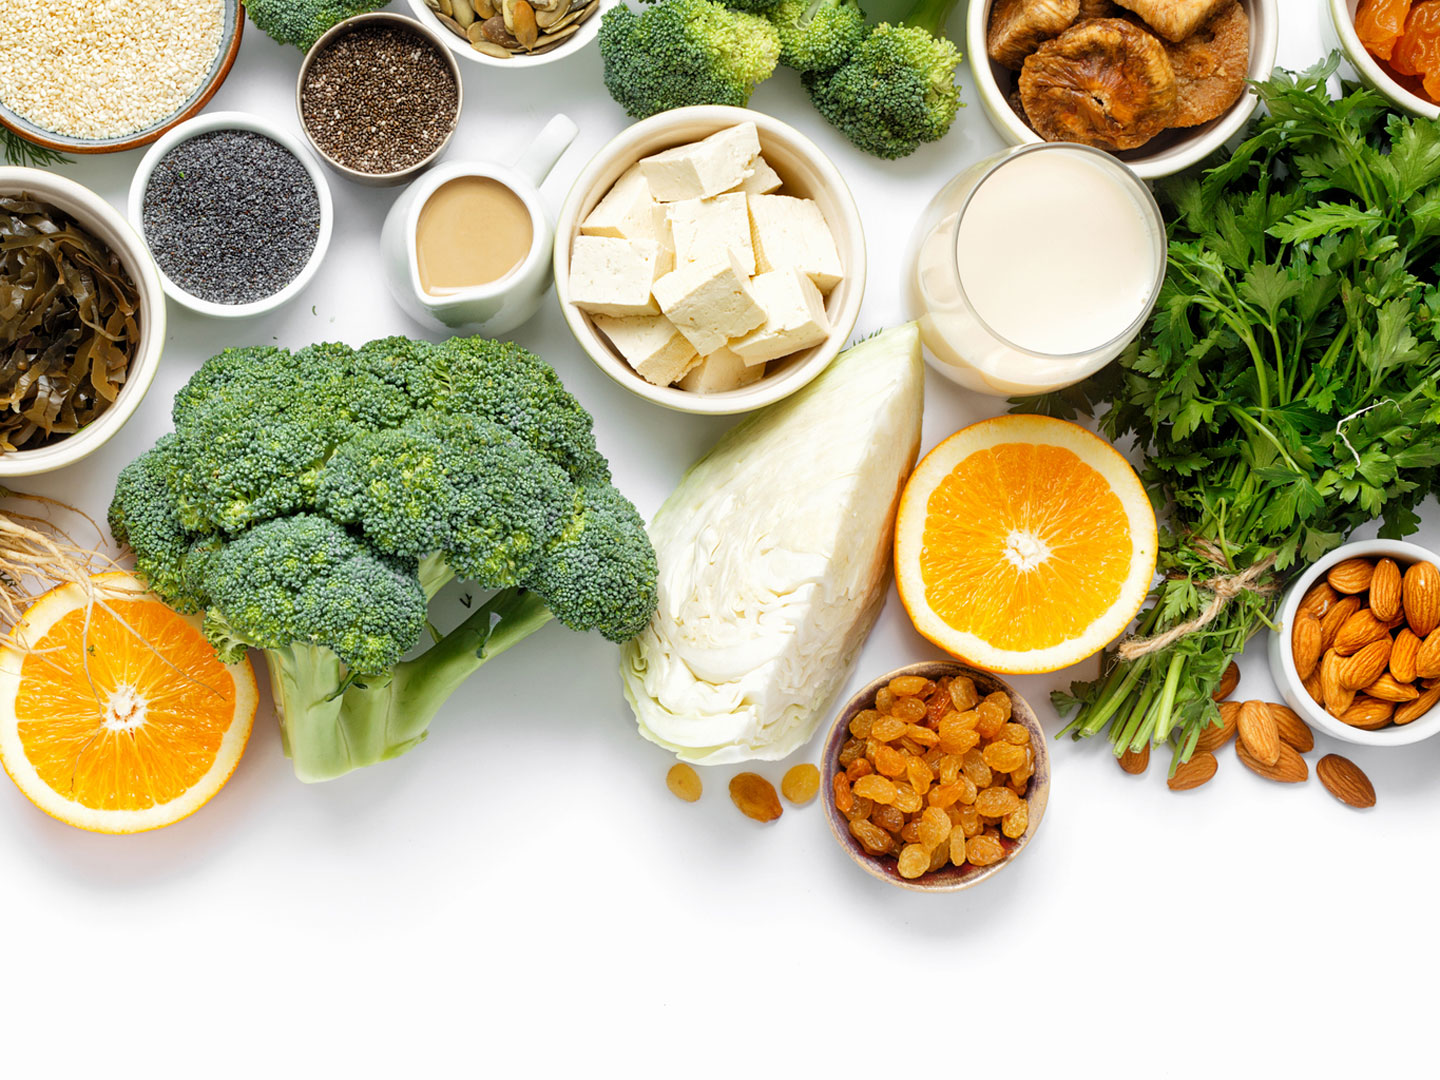 calcium foods vitamins rich vitamin supplements minerals weil mineral calambres drweil contains teeth curar alimentos mejores which nutrition cramps cure